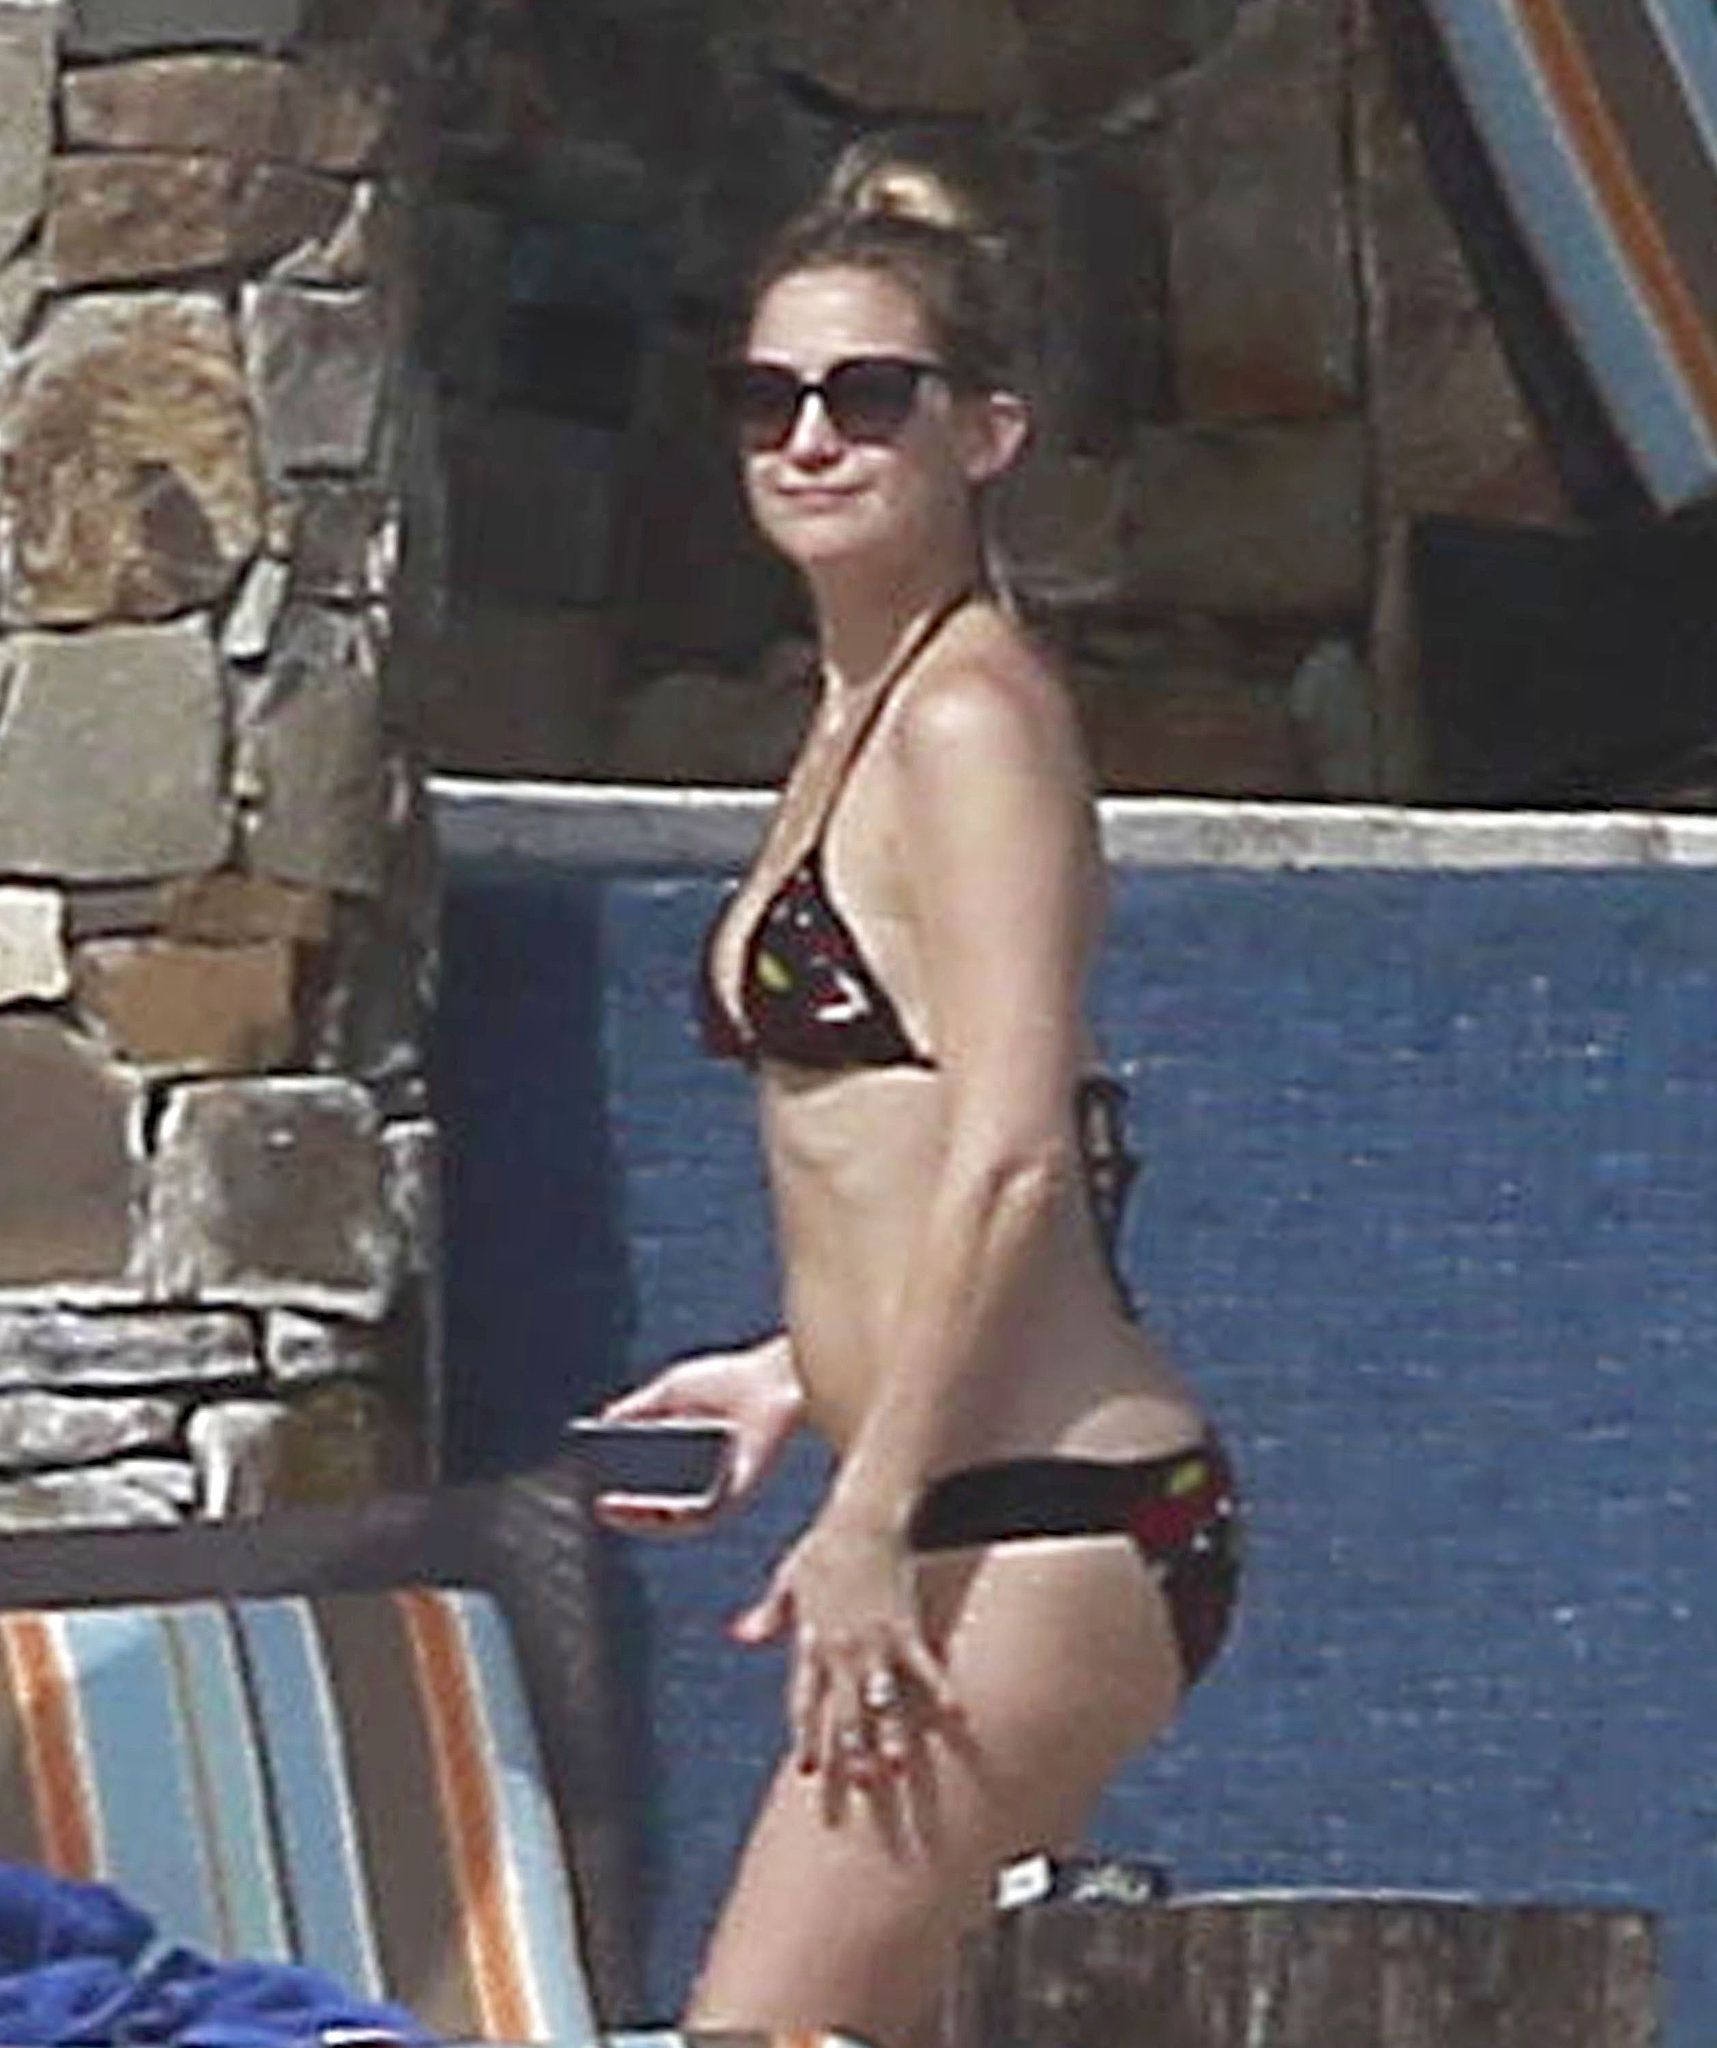 In February 2012, Kate looked fantastic in her printed two-piece while in Cabo with Matthew Bellamy.